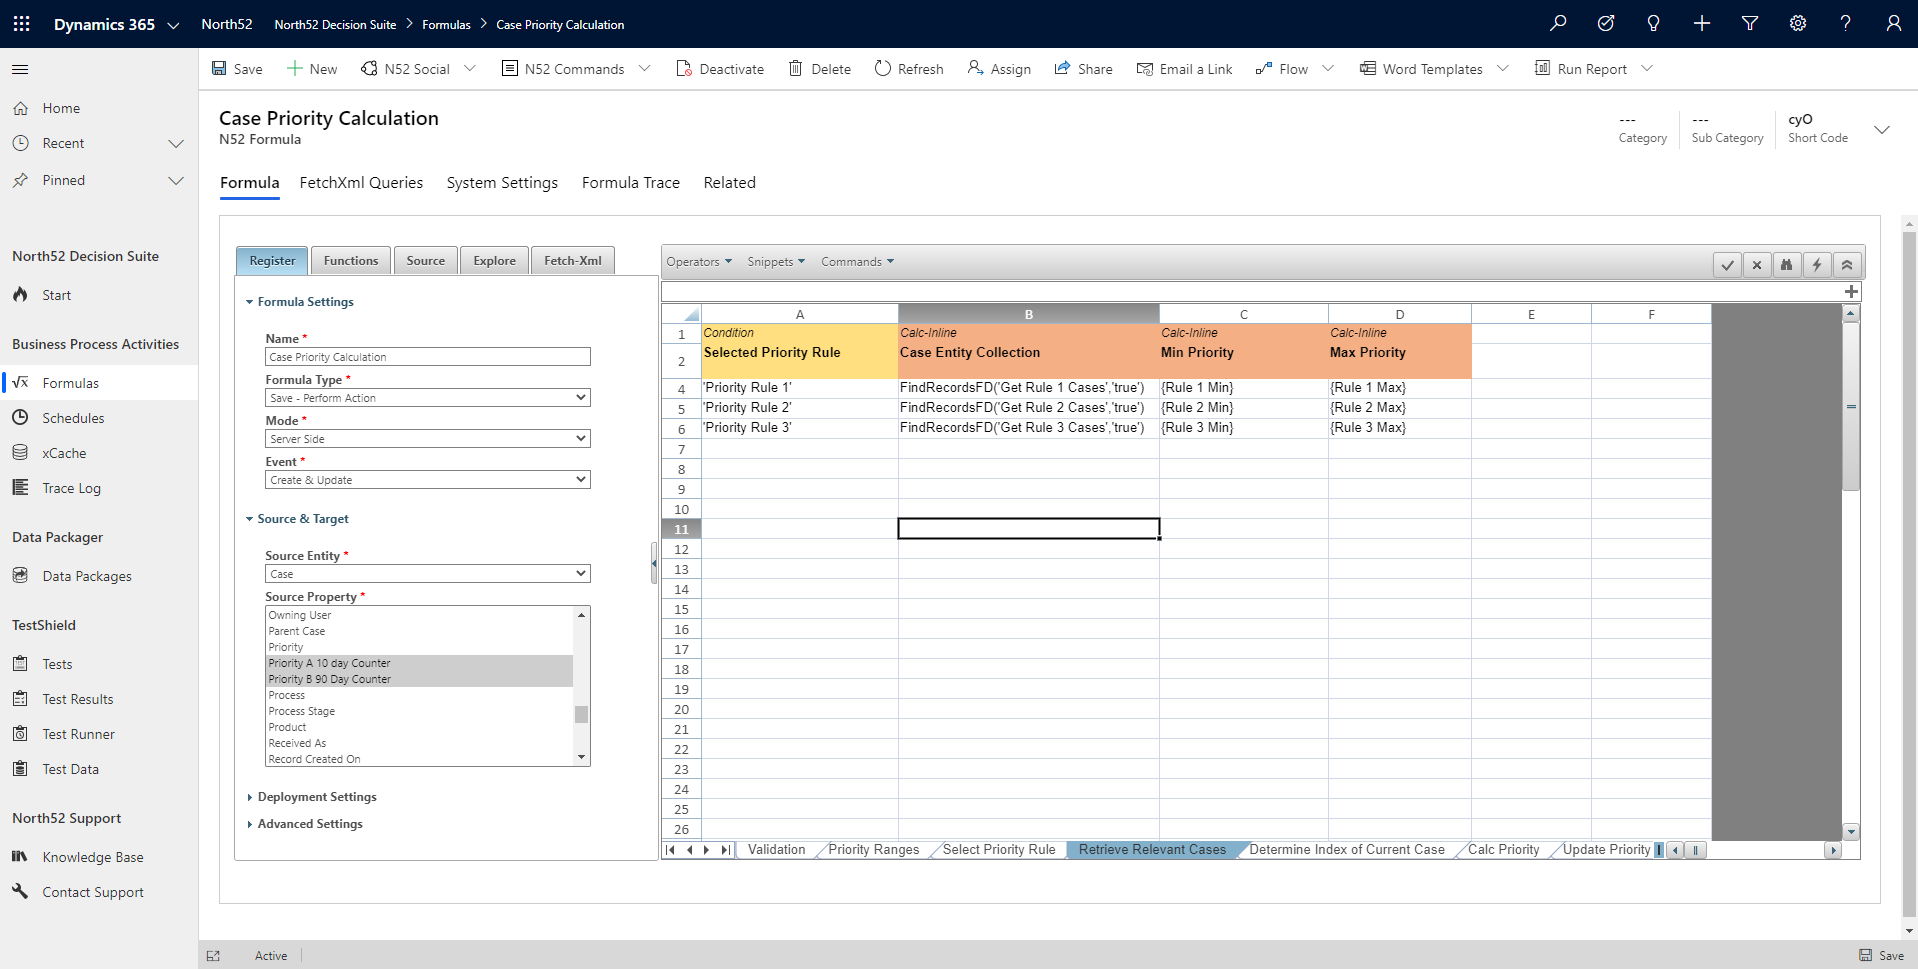 Retrieve Relevant Cases Decision Table - North52 Business Rules Engine for Dynamics 365